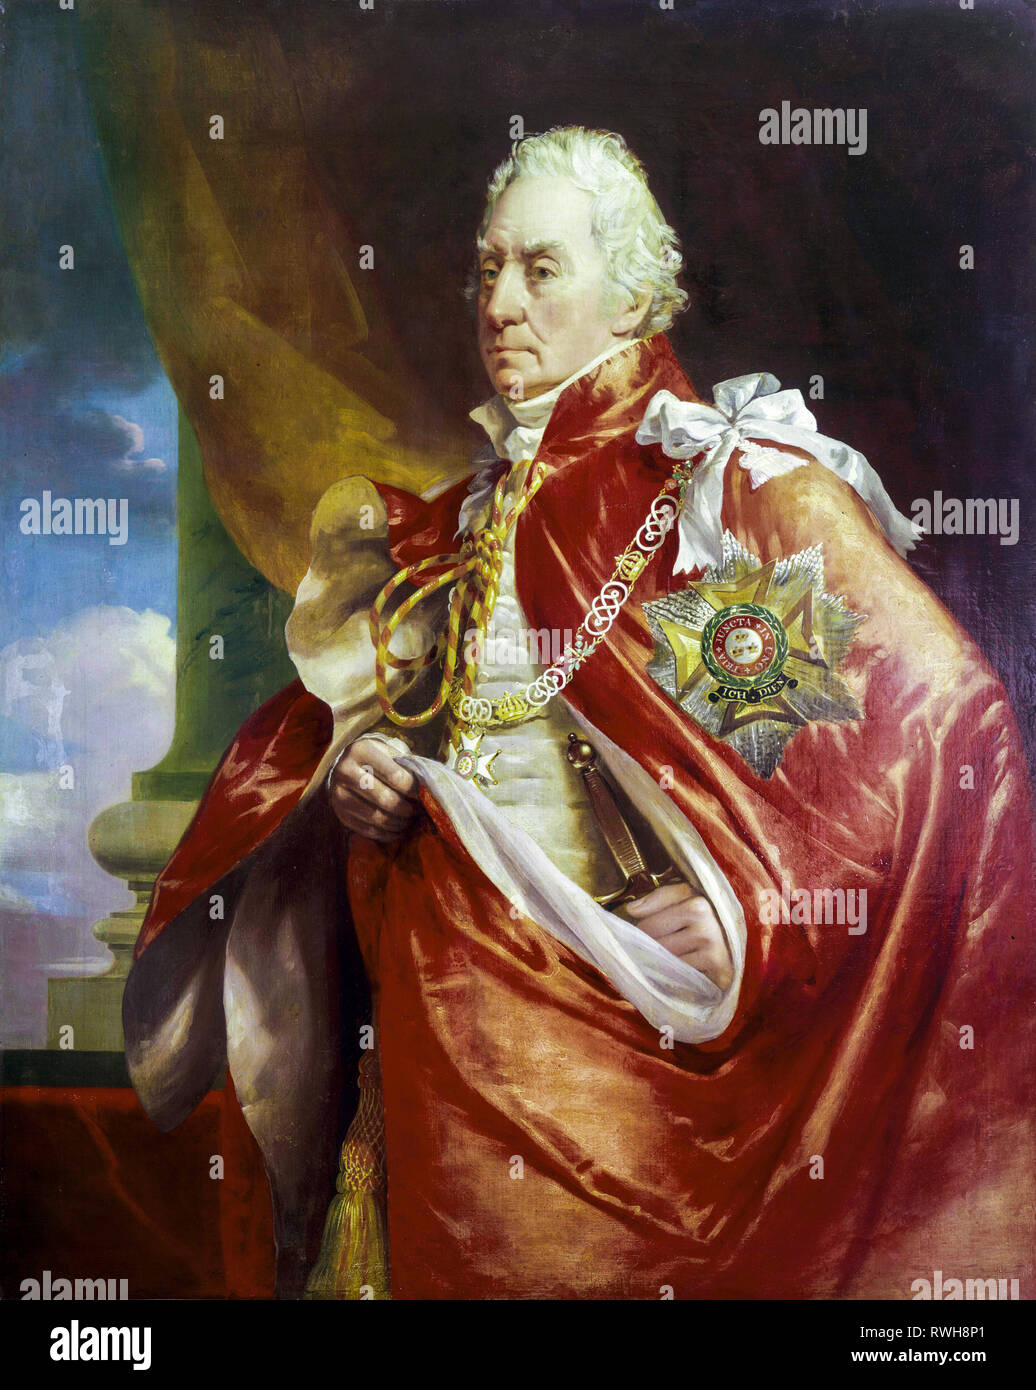 Admiral of the Red George Keith Elphinstone (1746-1823), 1st Viscount Keith, portrait painting, after 1815 by George Sanders - Stock Image